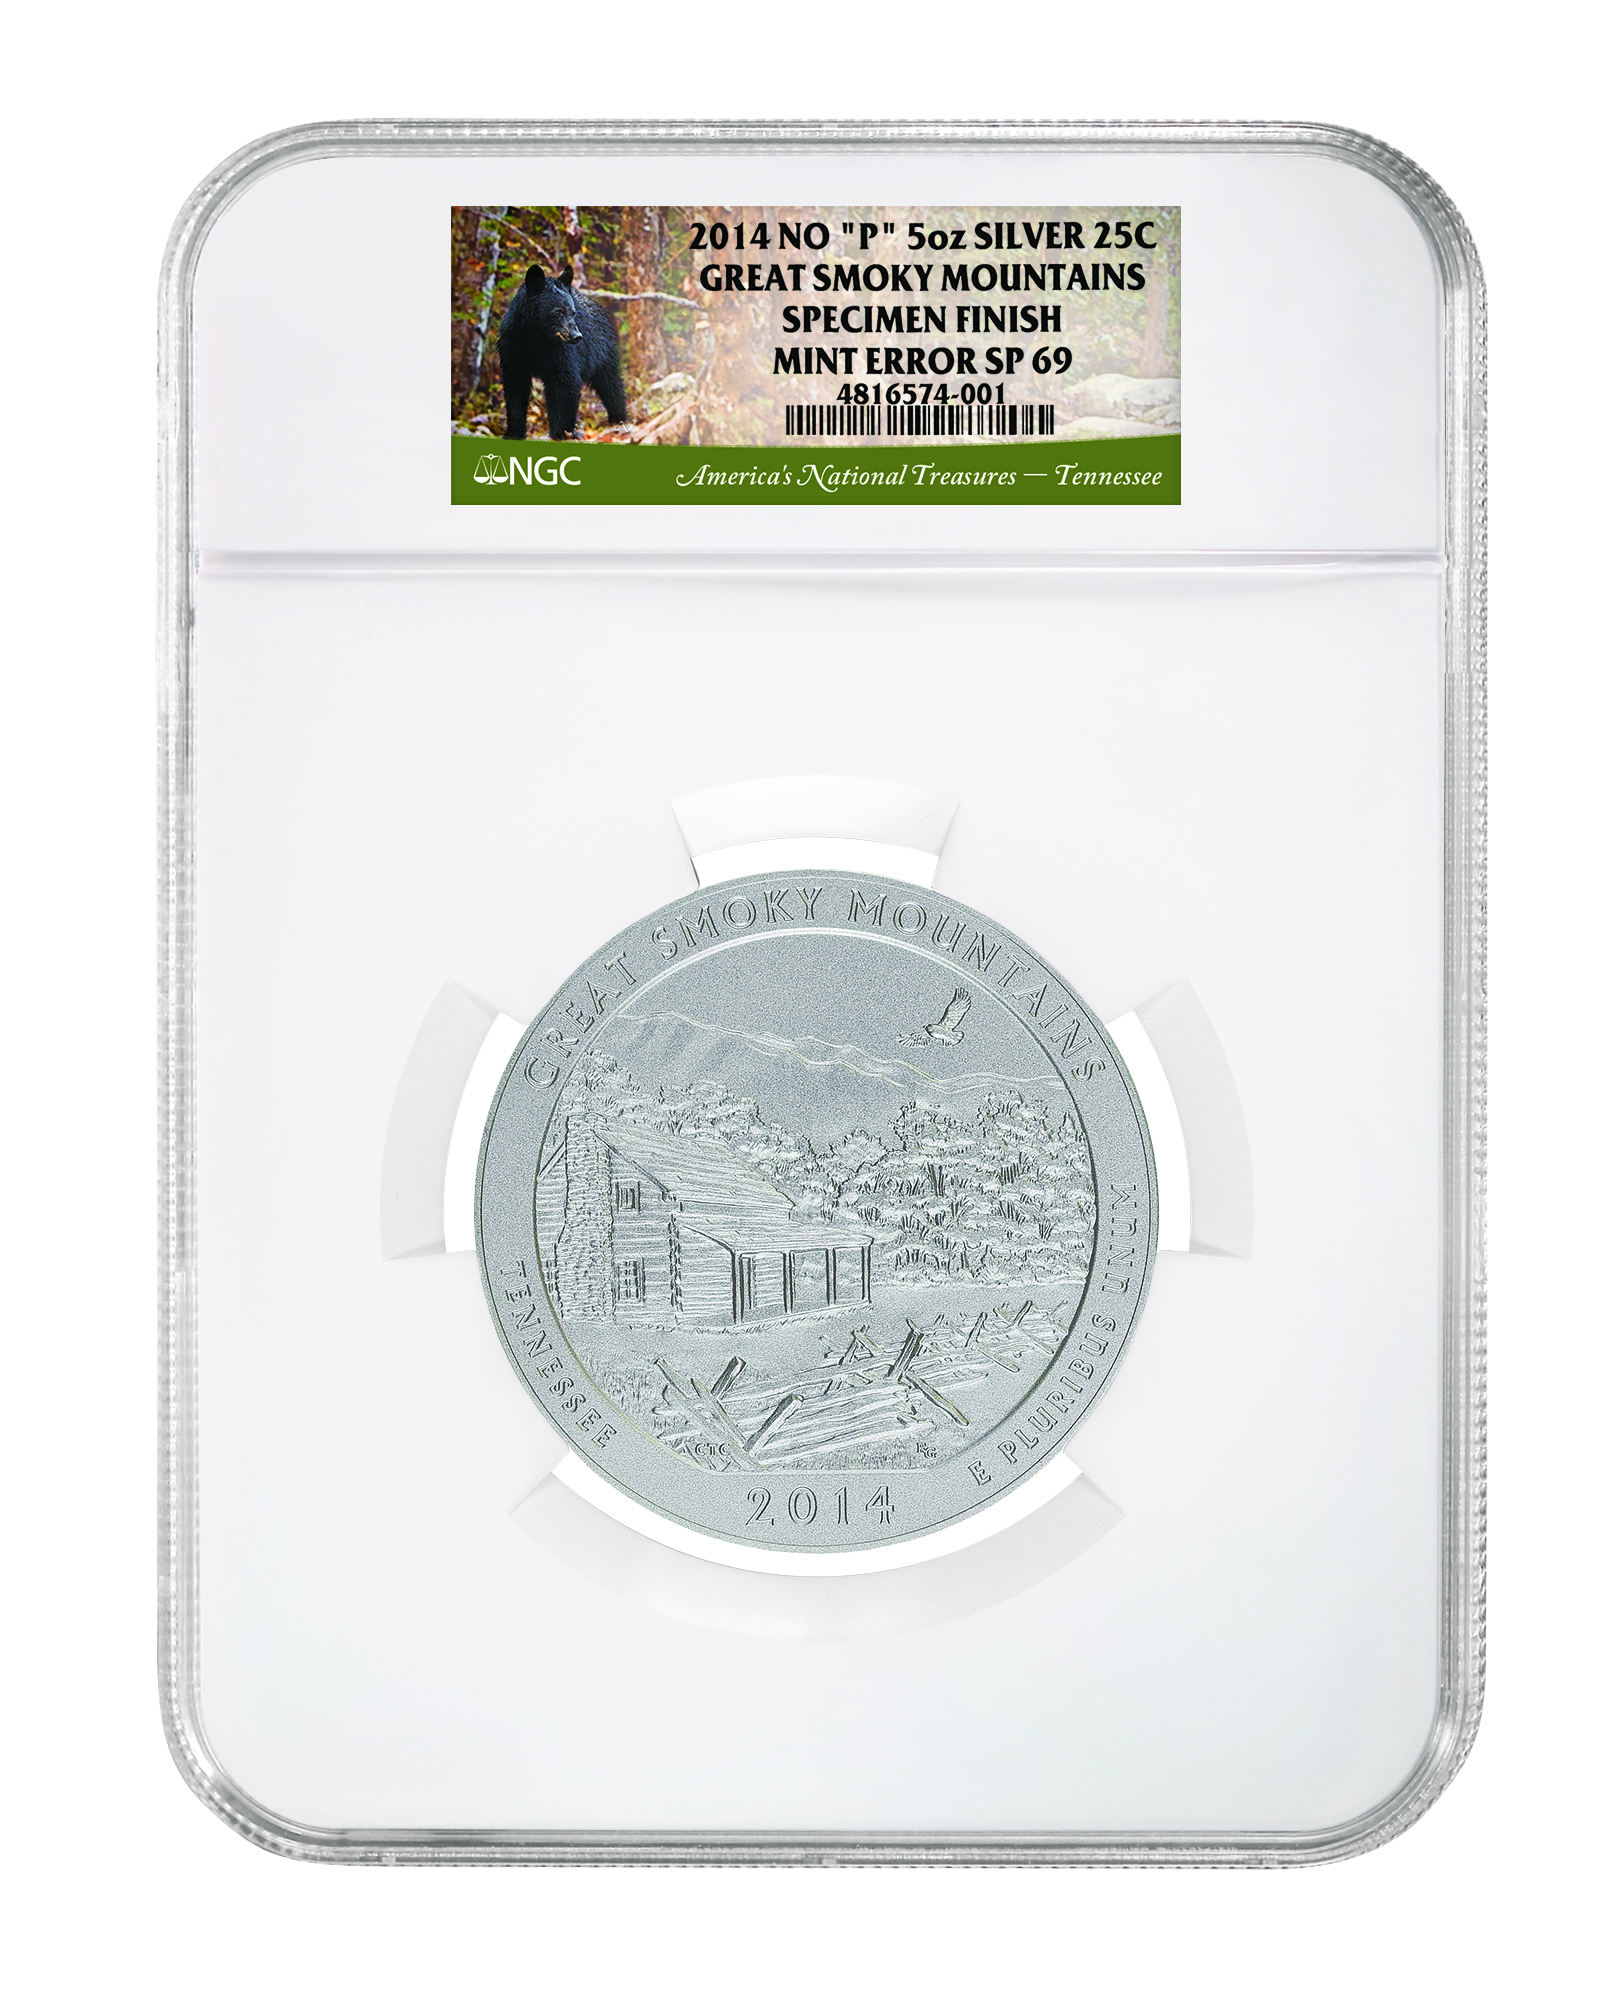 main image for New No-Mintmark Error Discovered On 2014 ATB Silver Coins